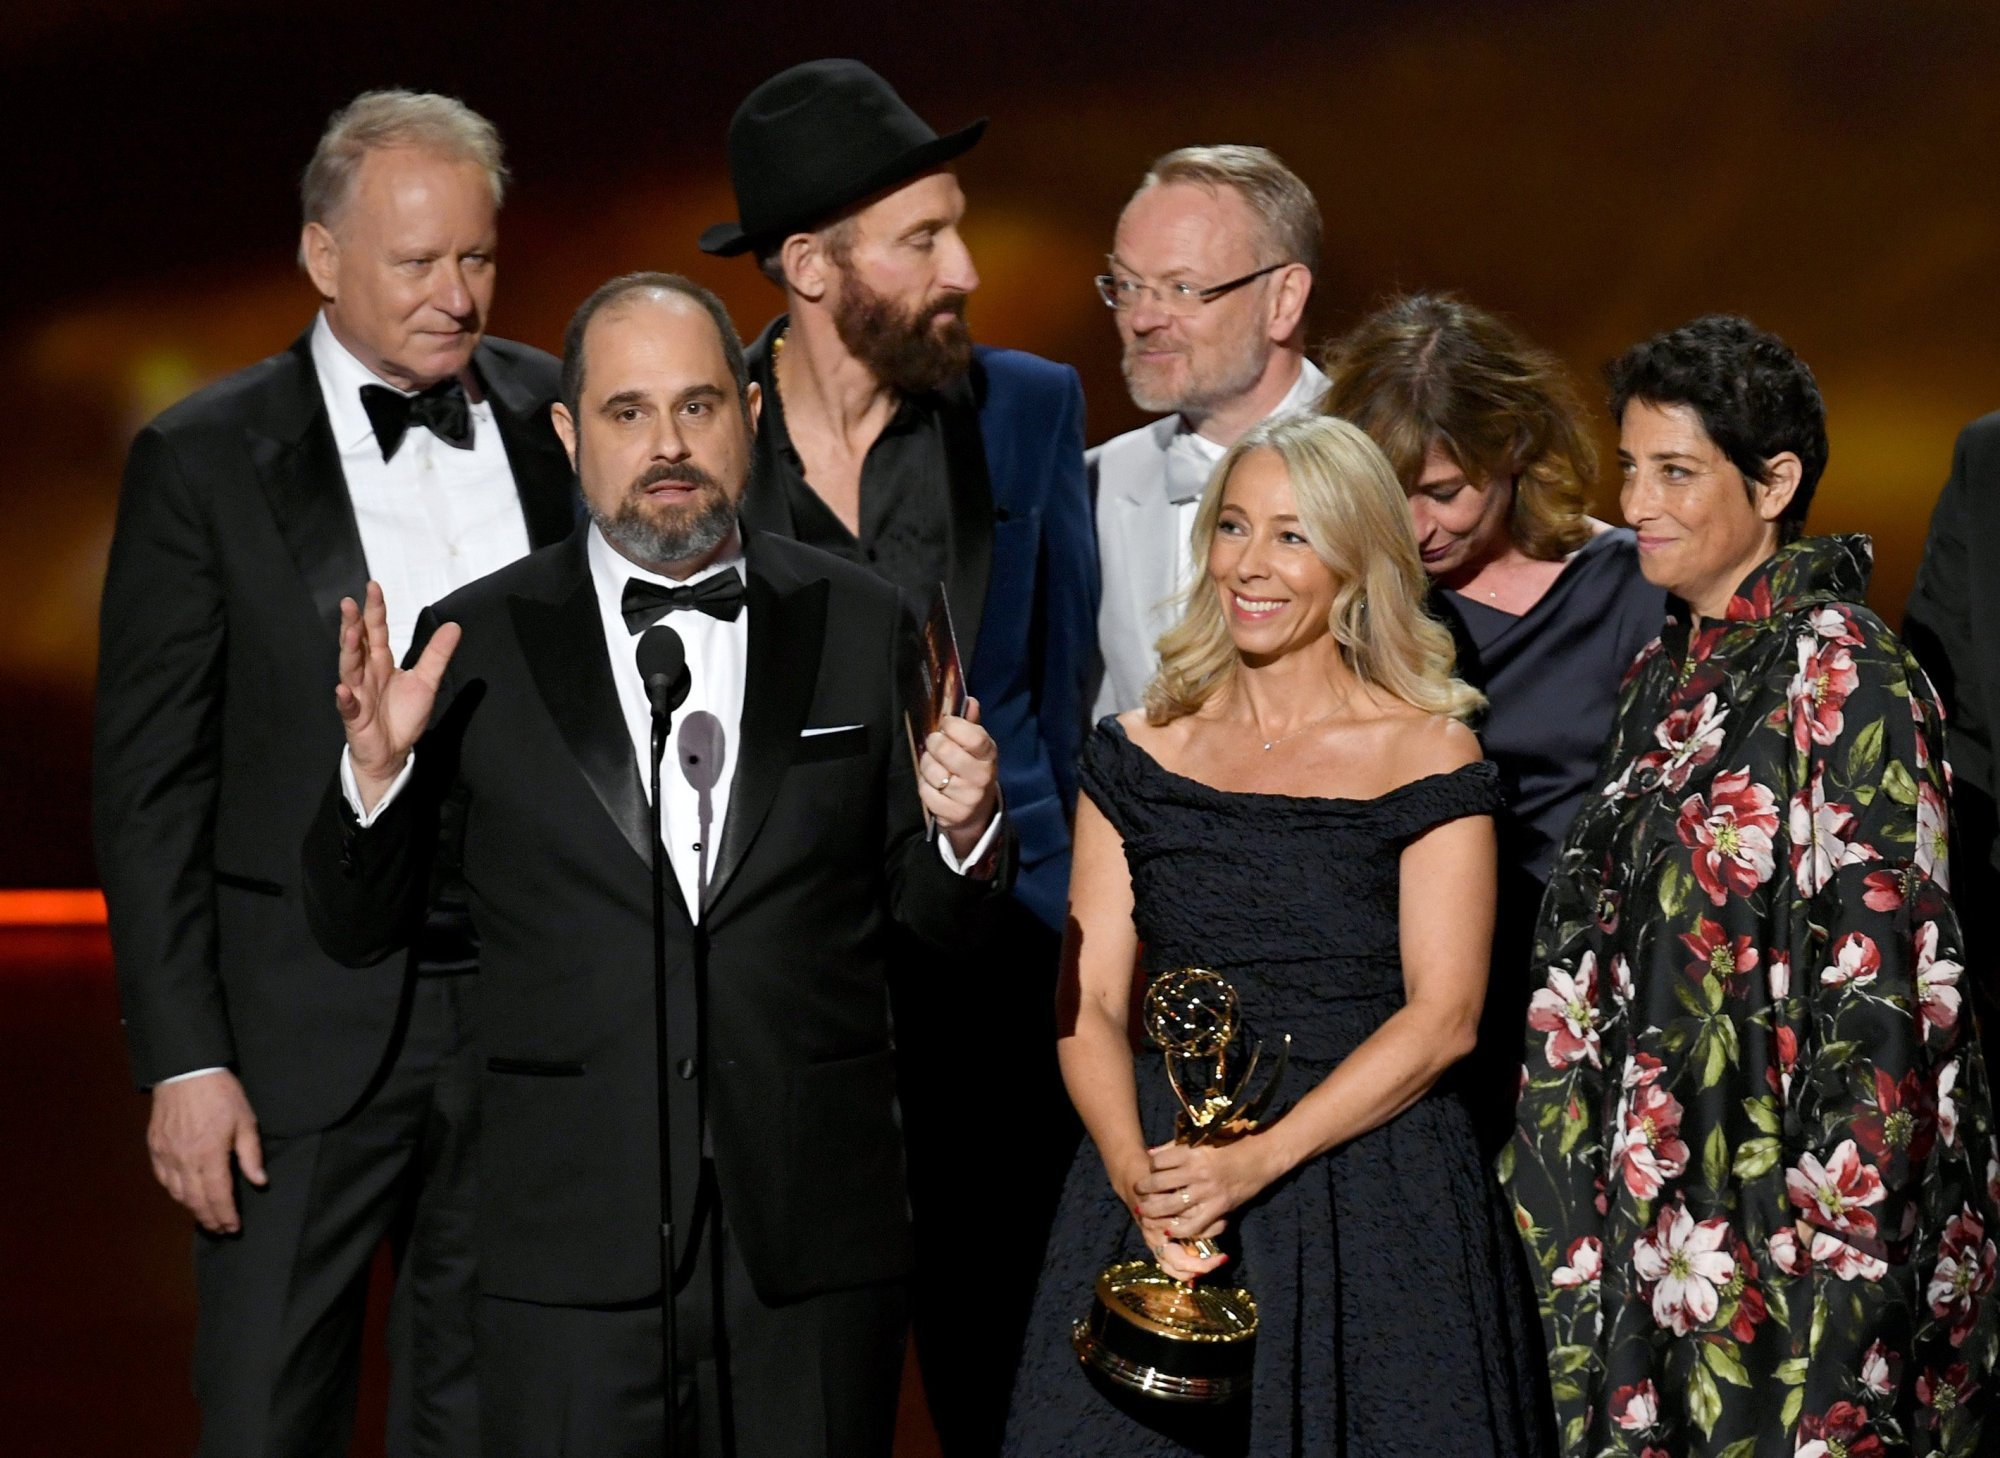 Stellan Skarsgård, Craig Mazin, Johan Renck, Jared Harris, Jane Featherstone, Sanne Wohlenberg and Carolyn Strauss accept the Outstanding Limited Series Emmy.